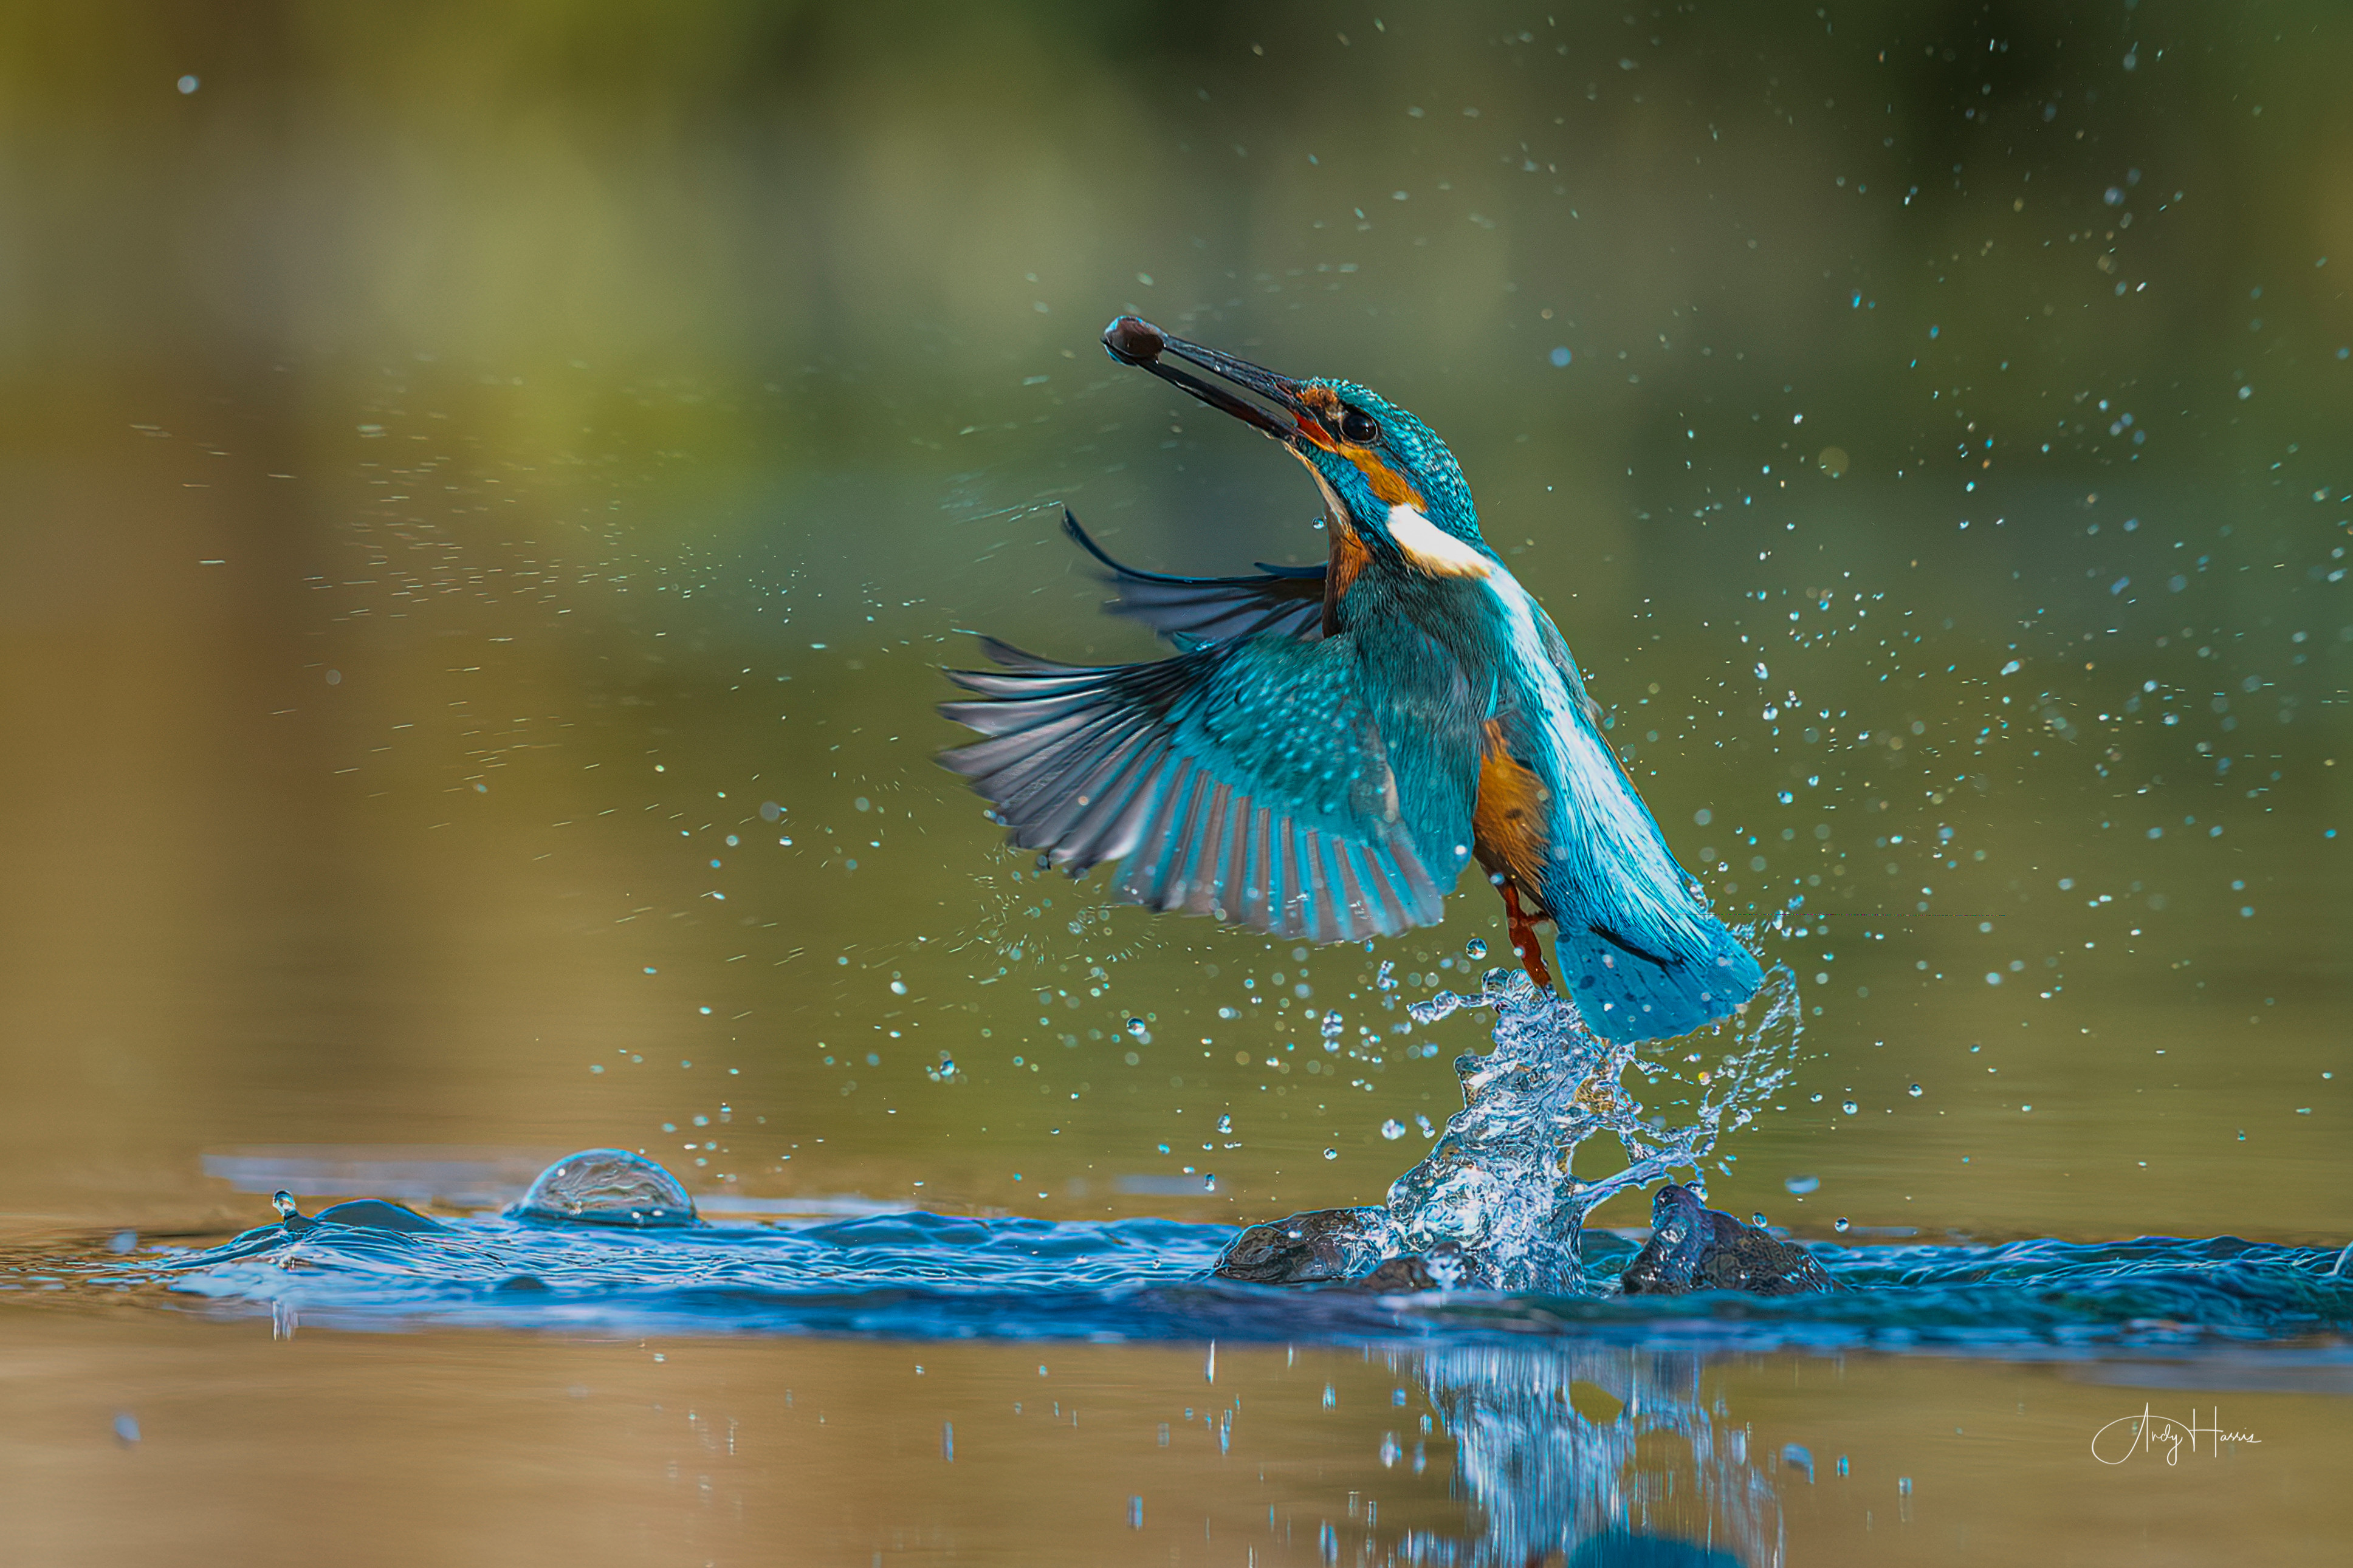 A wildlife photography experience gift